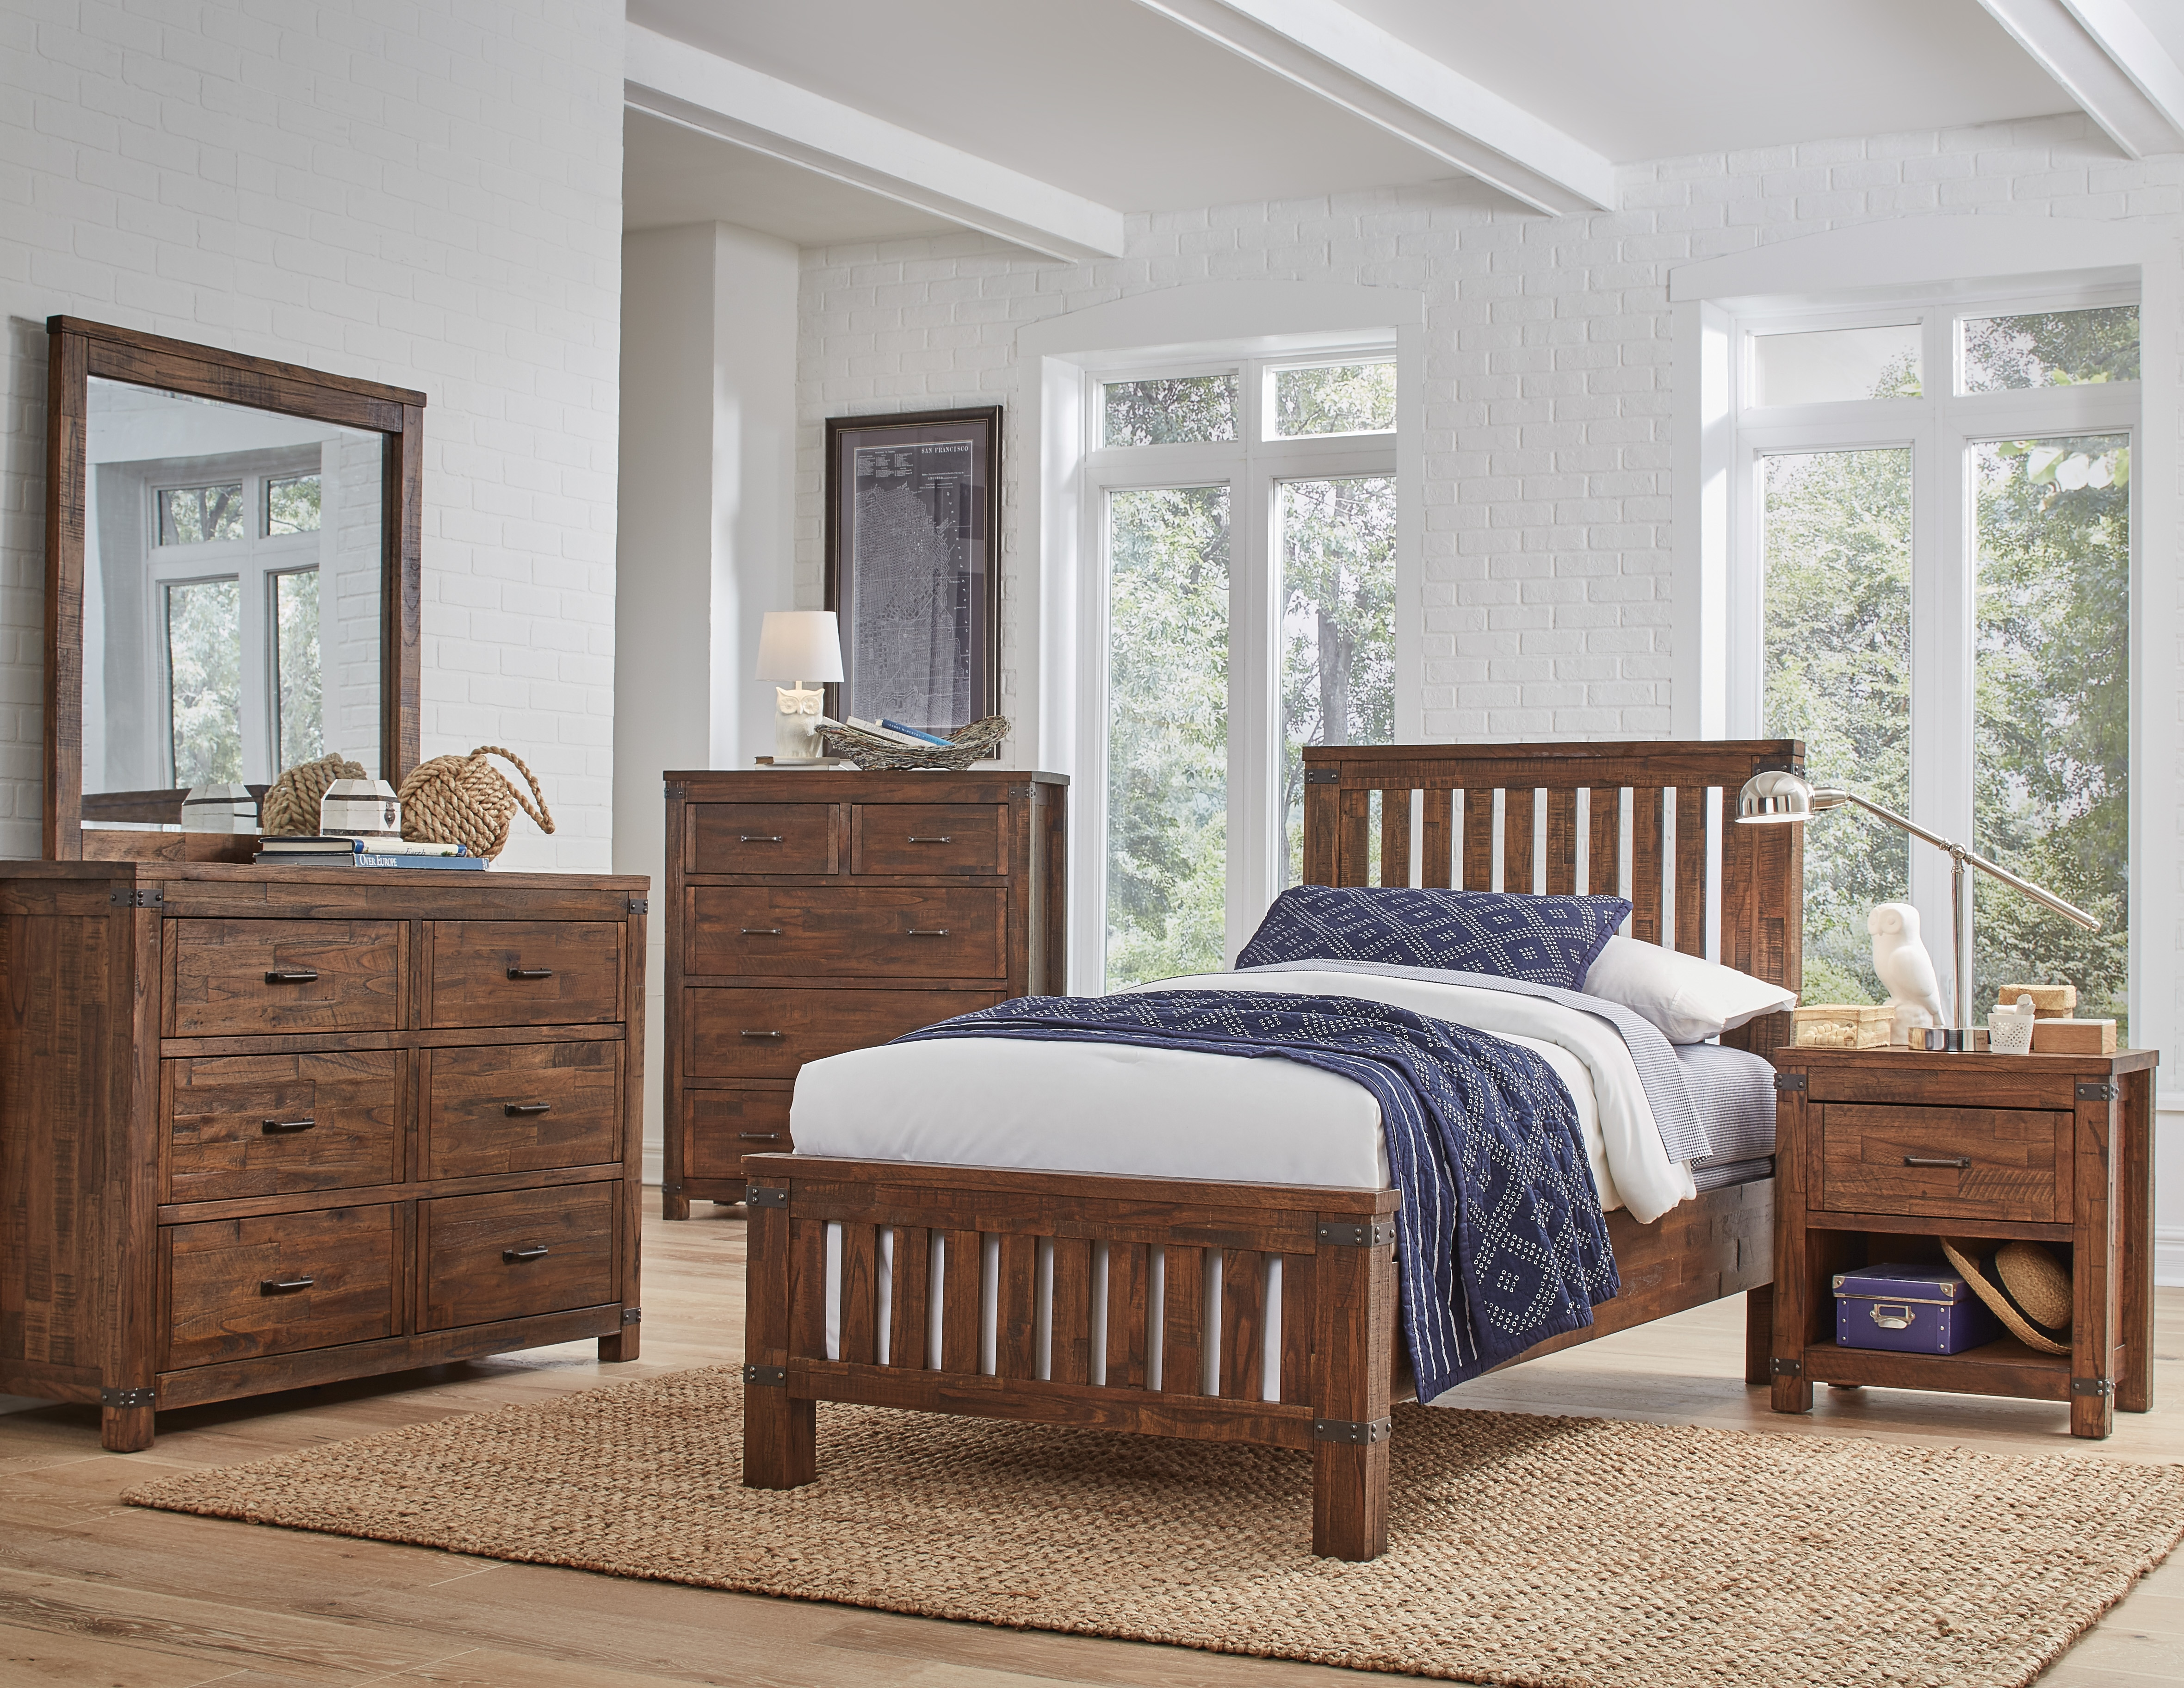 Lil Everett 4 Piece Full Bedroom - Weathered Natural